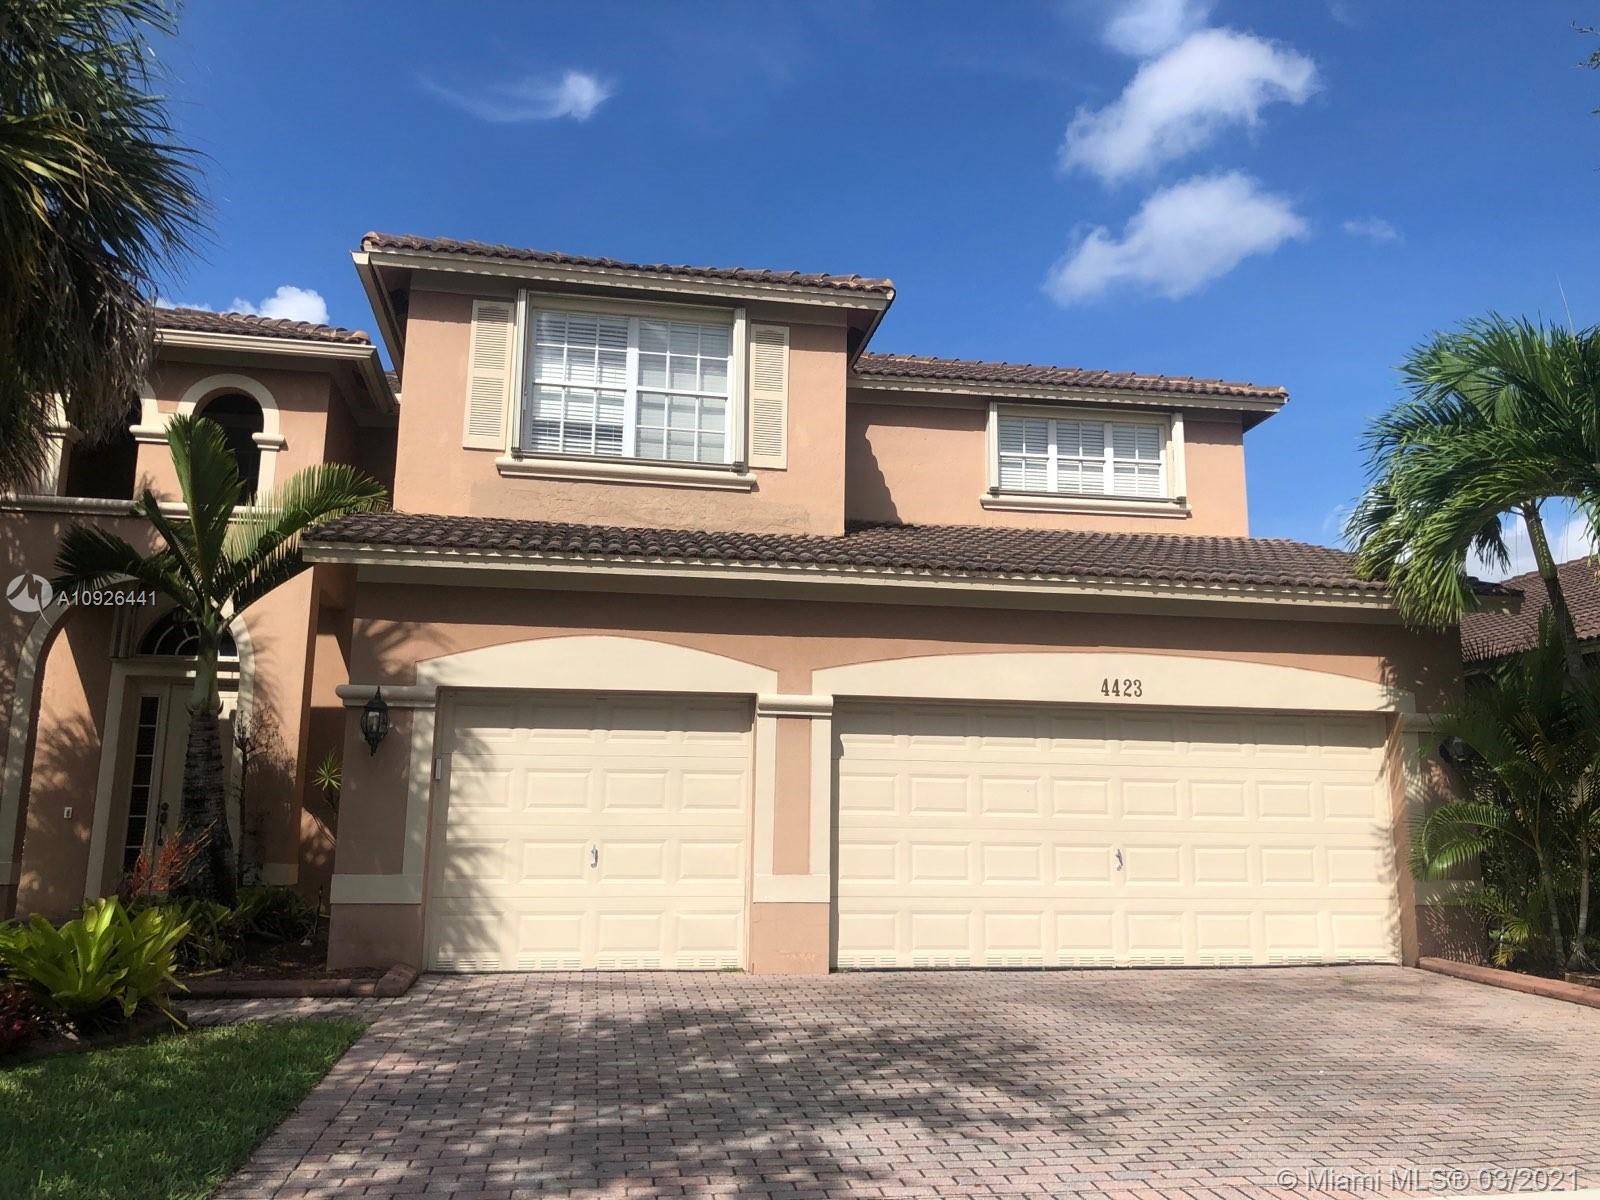 Weston - 4423 Rainbow Ave, Weston, FL 33332